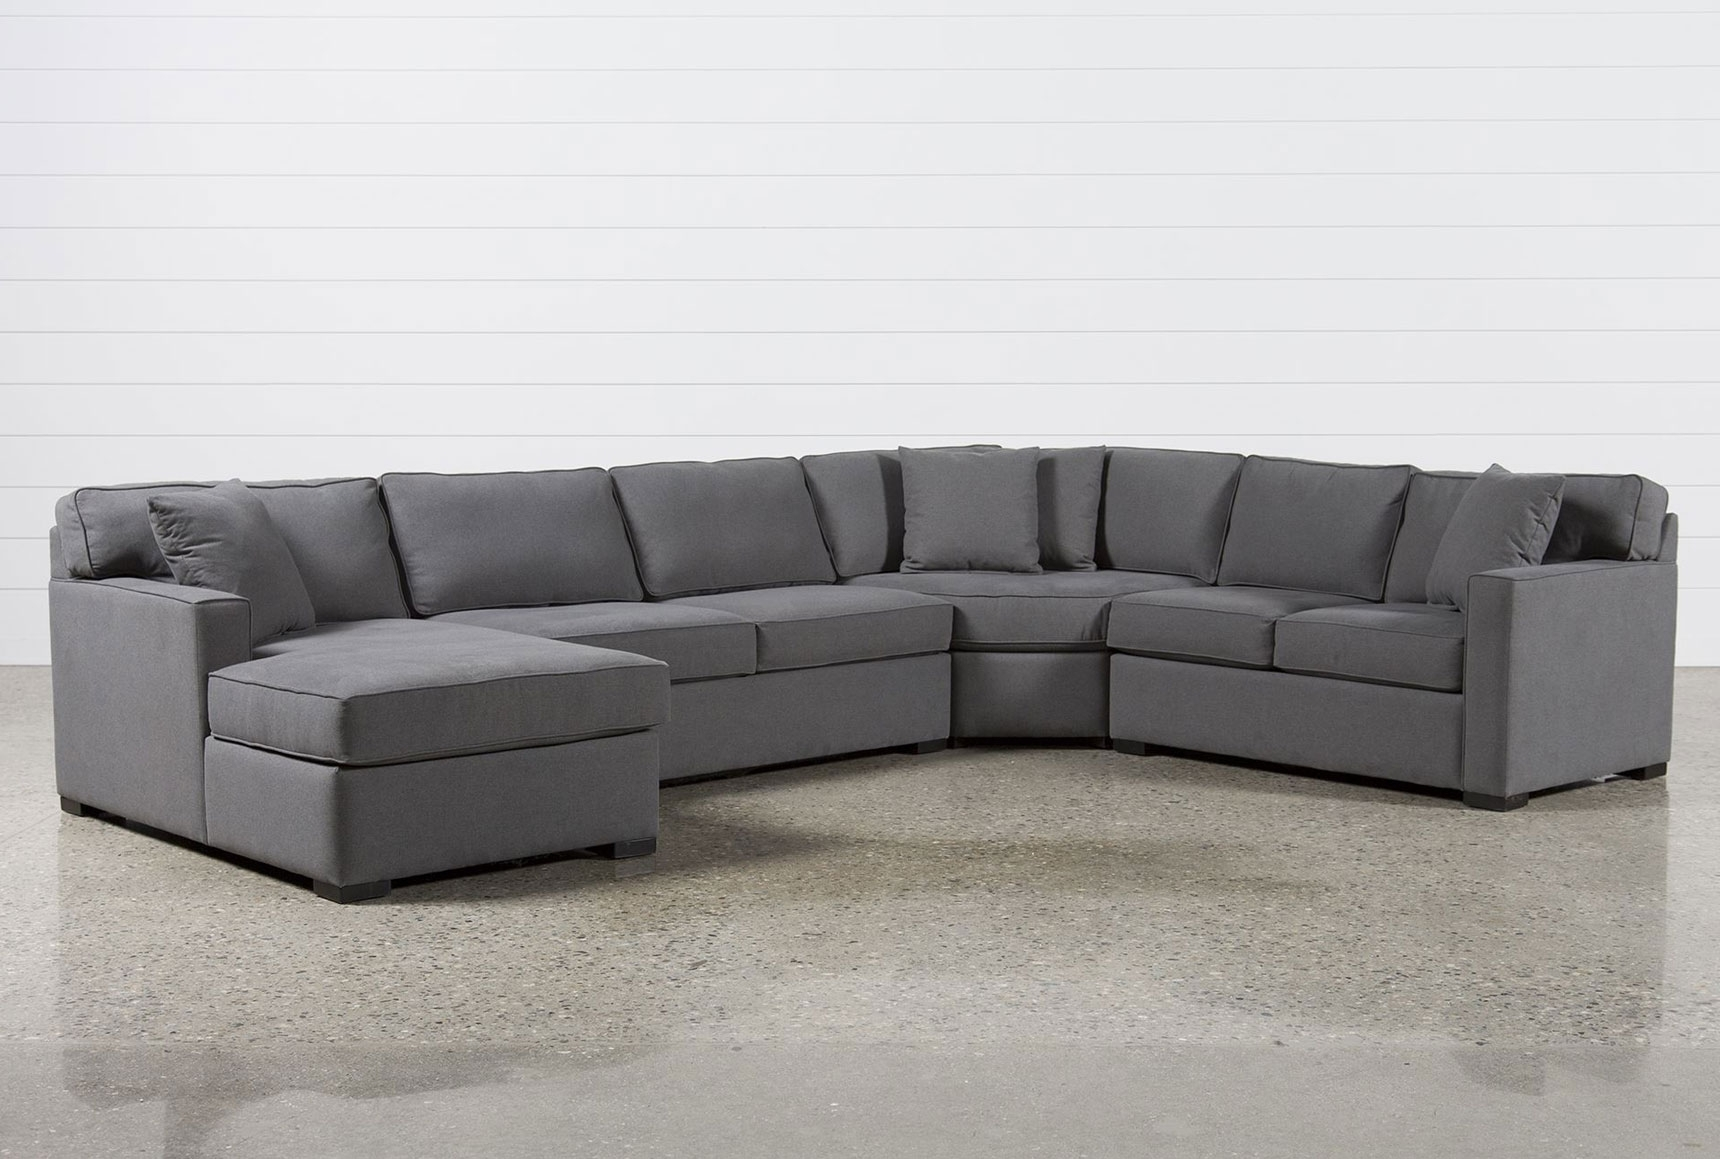 Sectional Sofa: Recommended 45 Degree Sectional Sofa 135 Degree With Regard To Trendy Everett Wa Sectional Sofas (View 15 of 15)